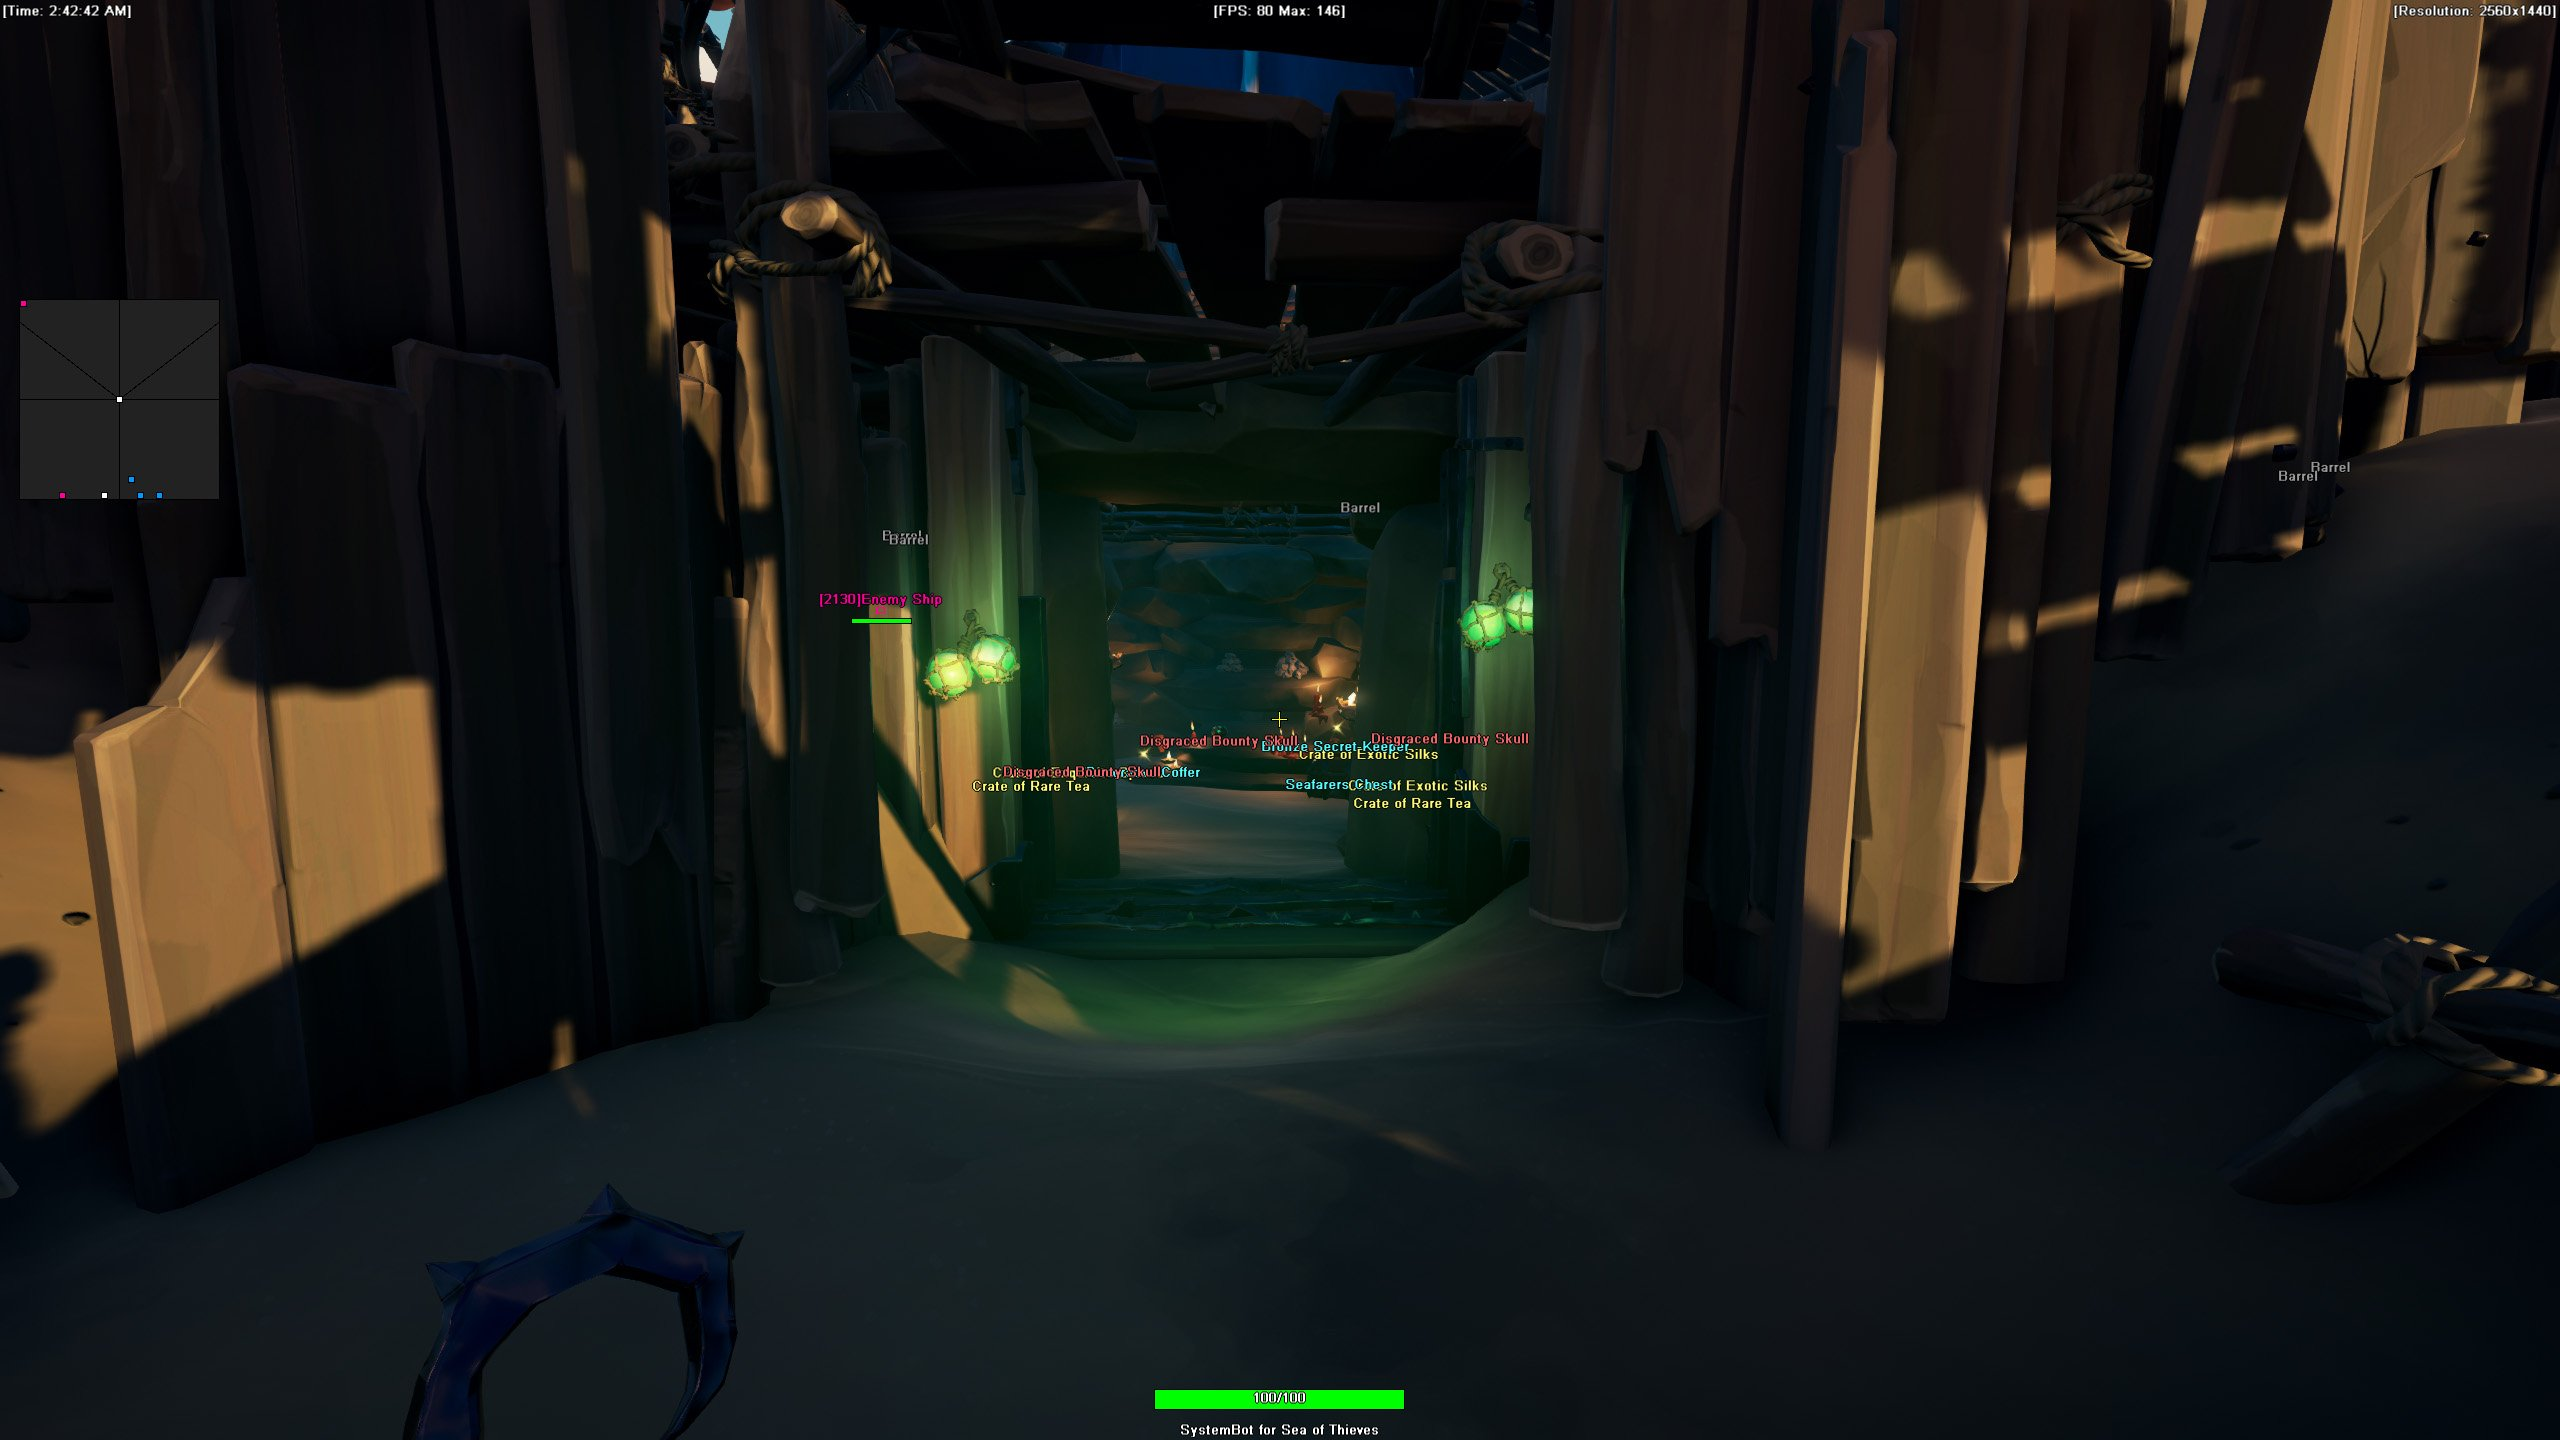 Sea of Thieves Cheat/Hack with Aimbot - SystemCheats